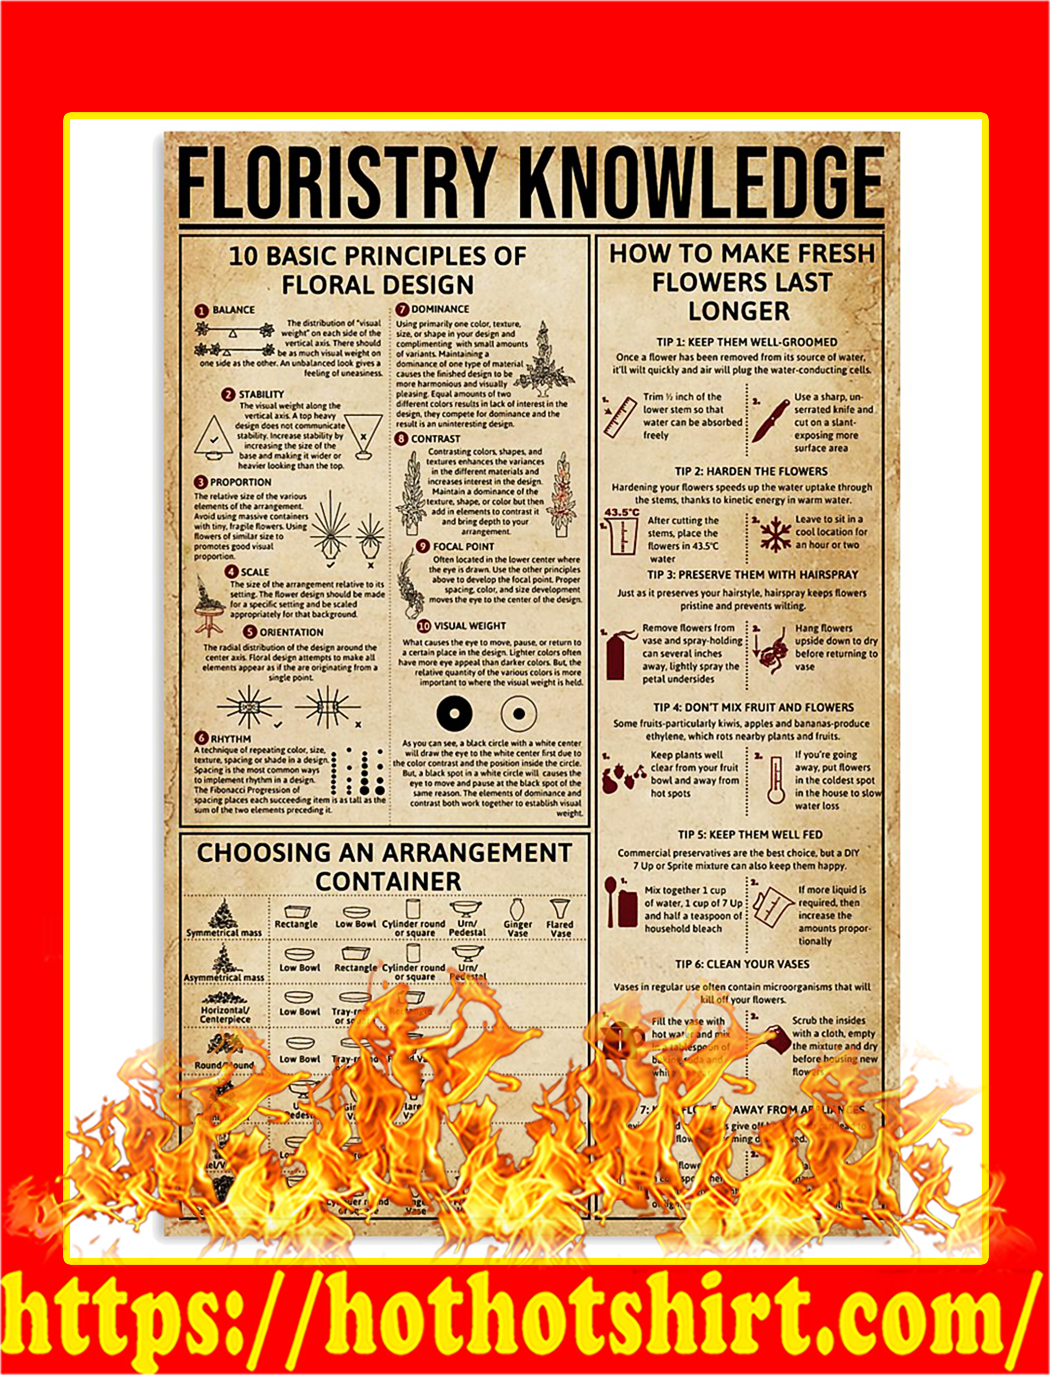 Floristry Knowledge Poster - A4